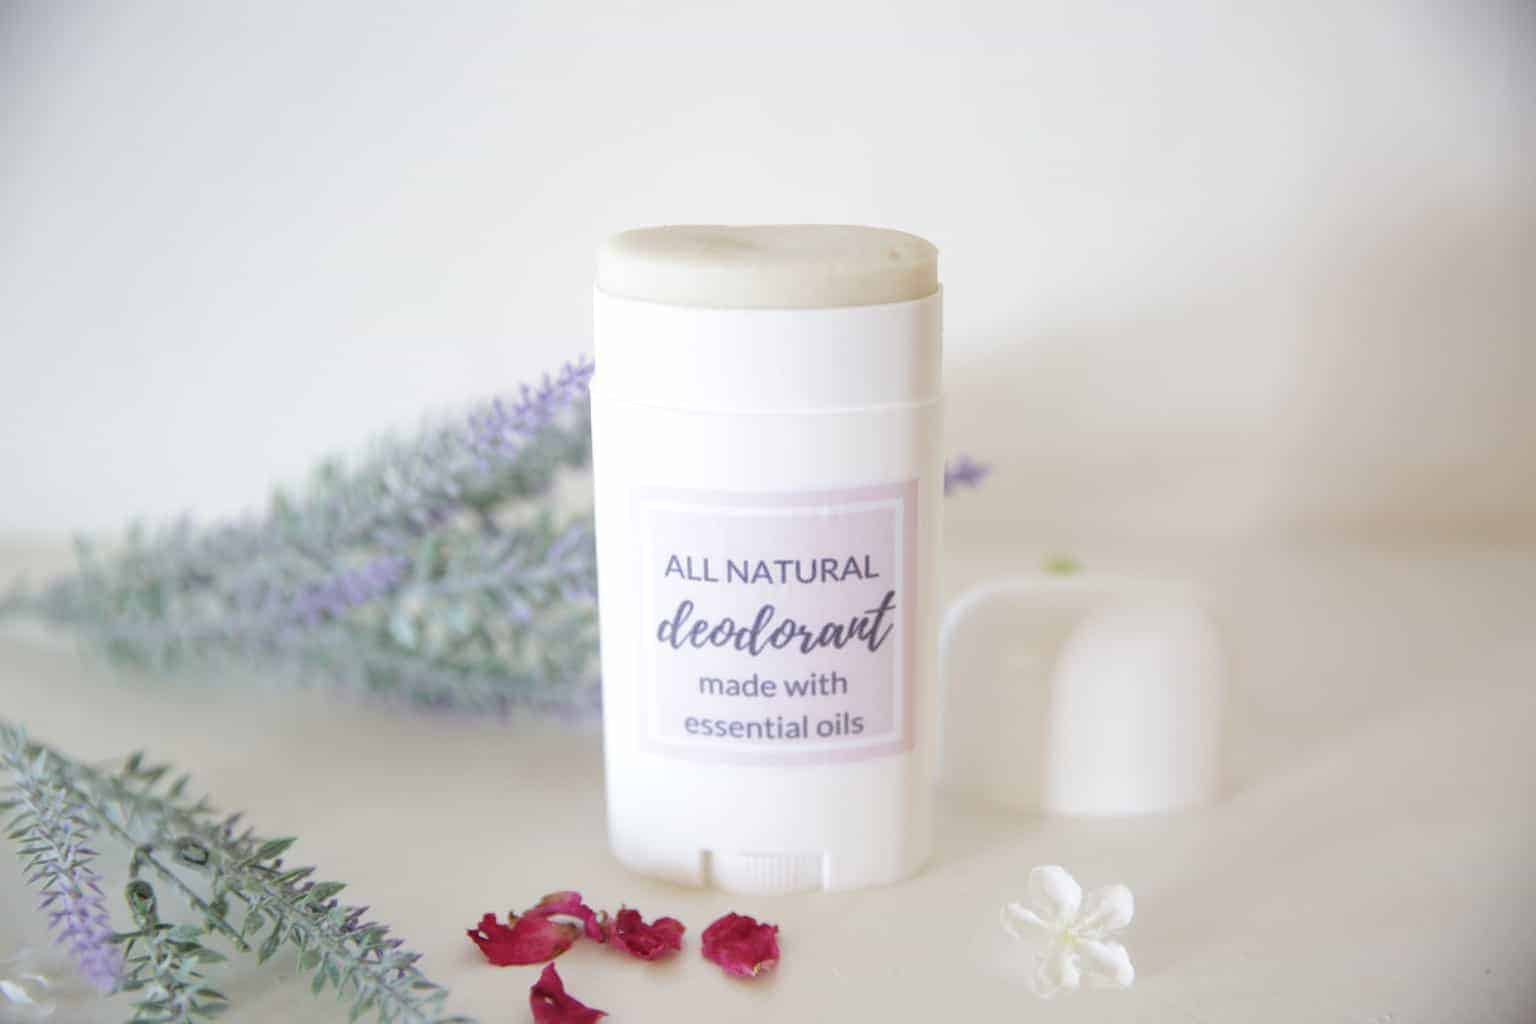 Learn how to make deodorant with essential oils that is all natural, and actually works!